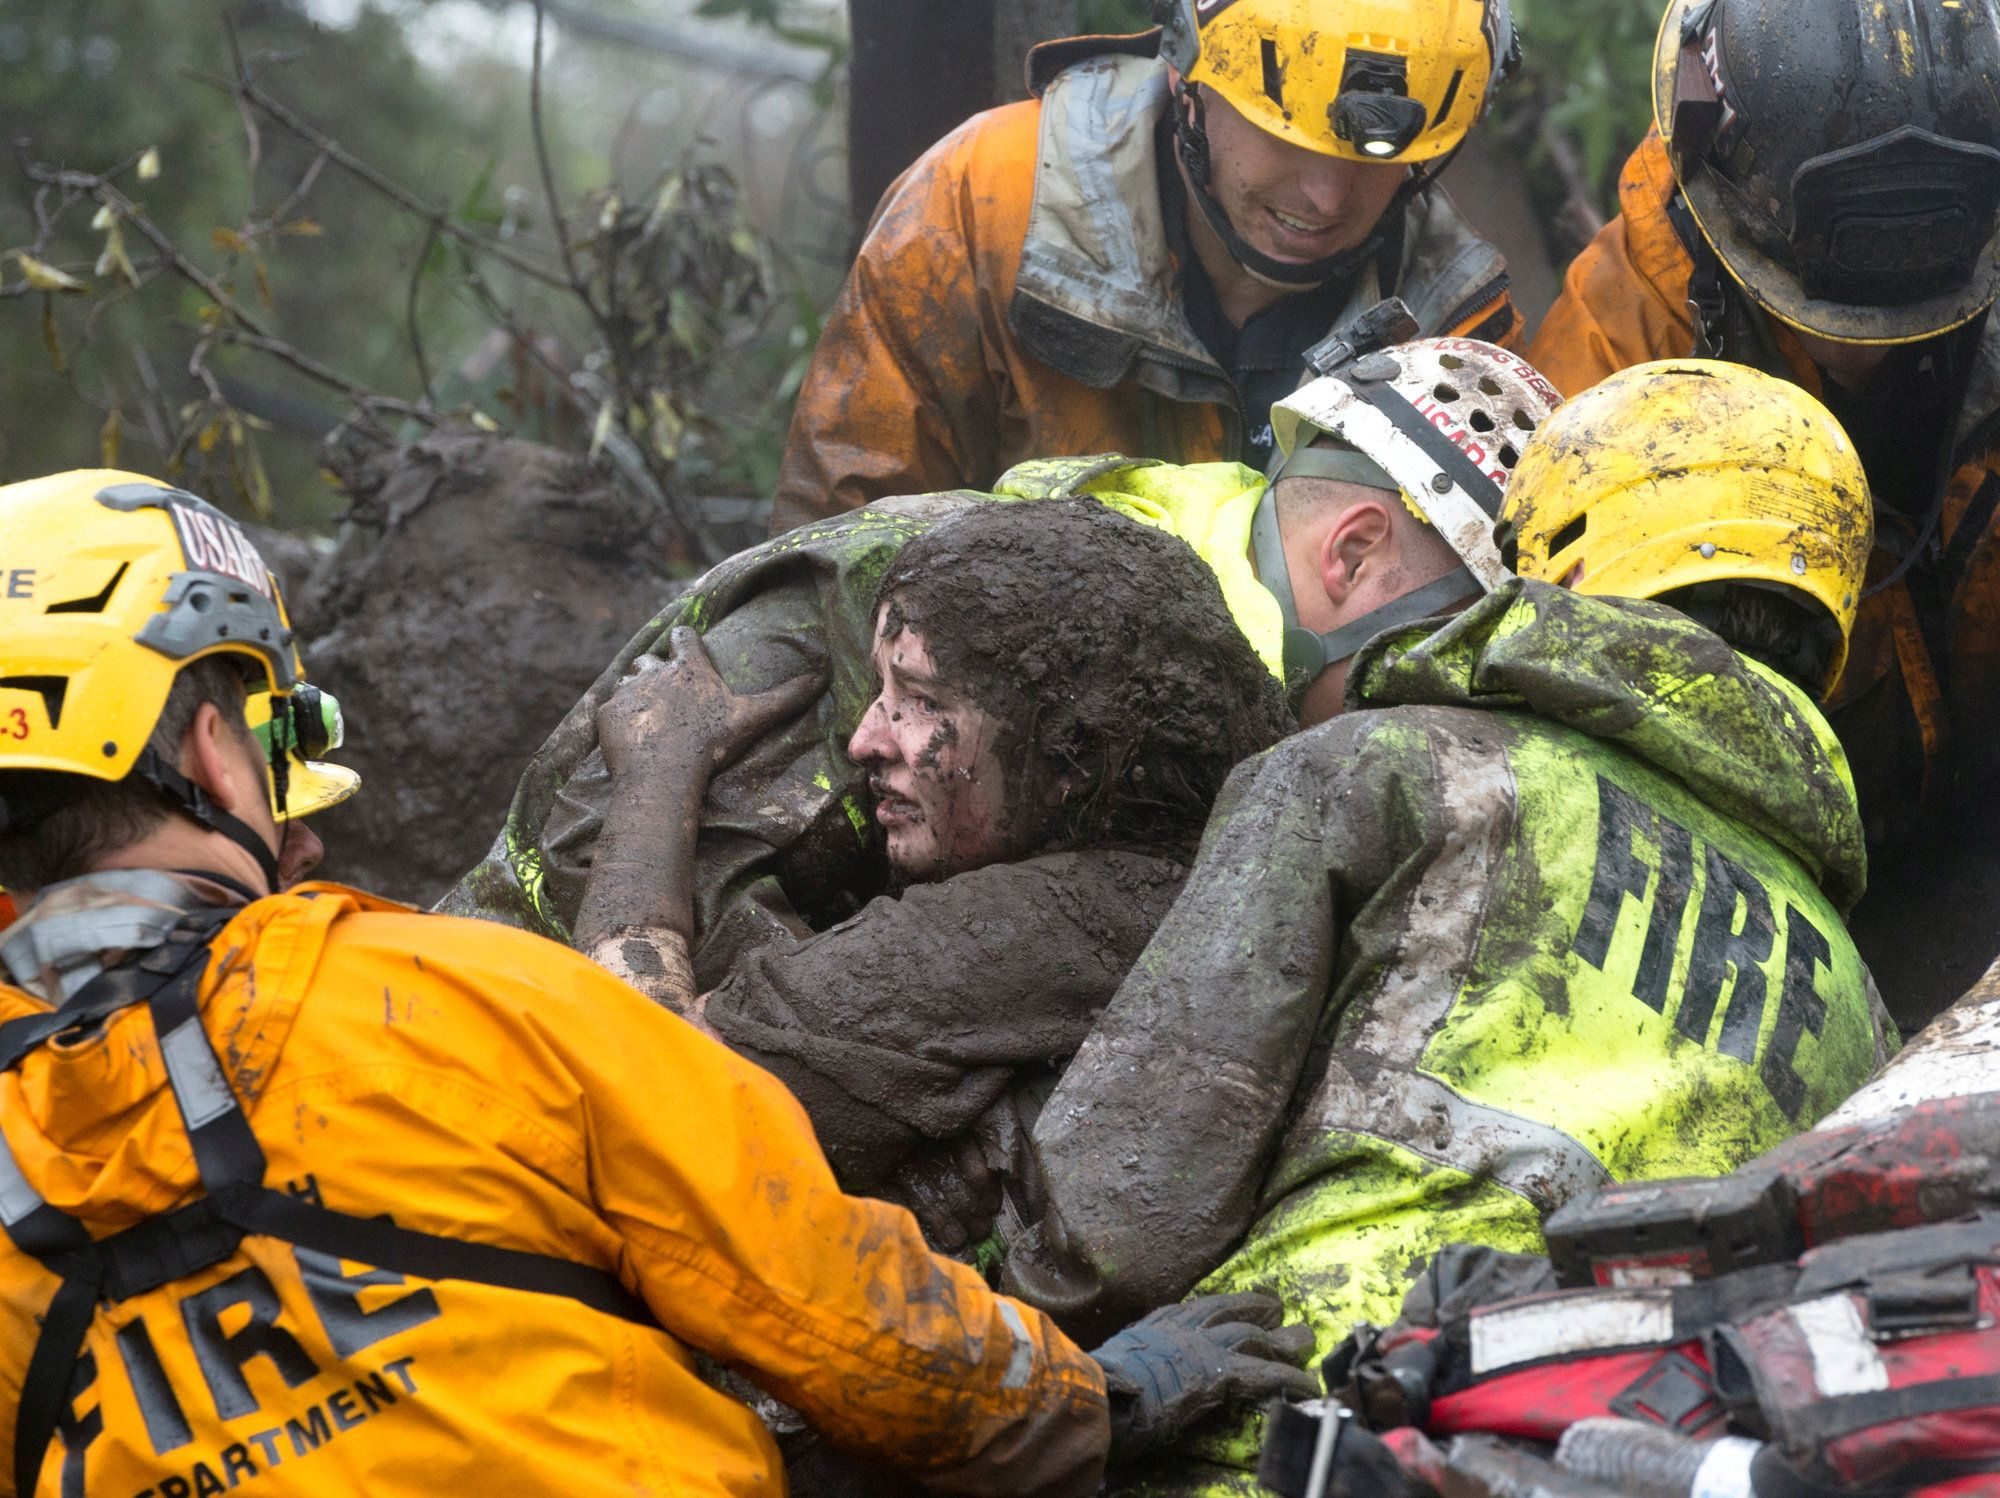 Emergency personnel carry a woman rescued from a collapsed house after a mudslide.